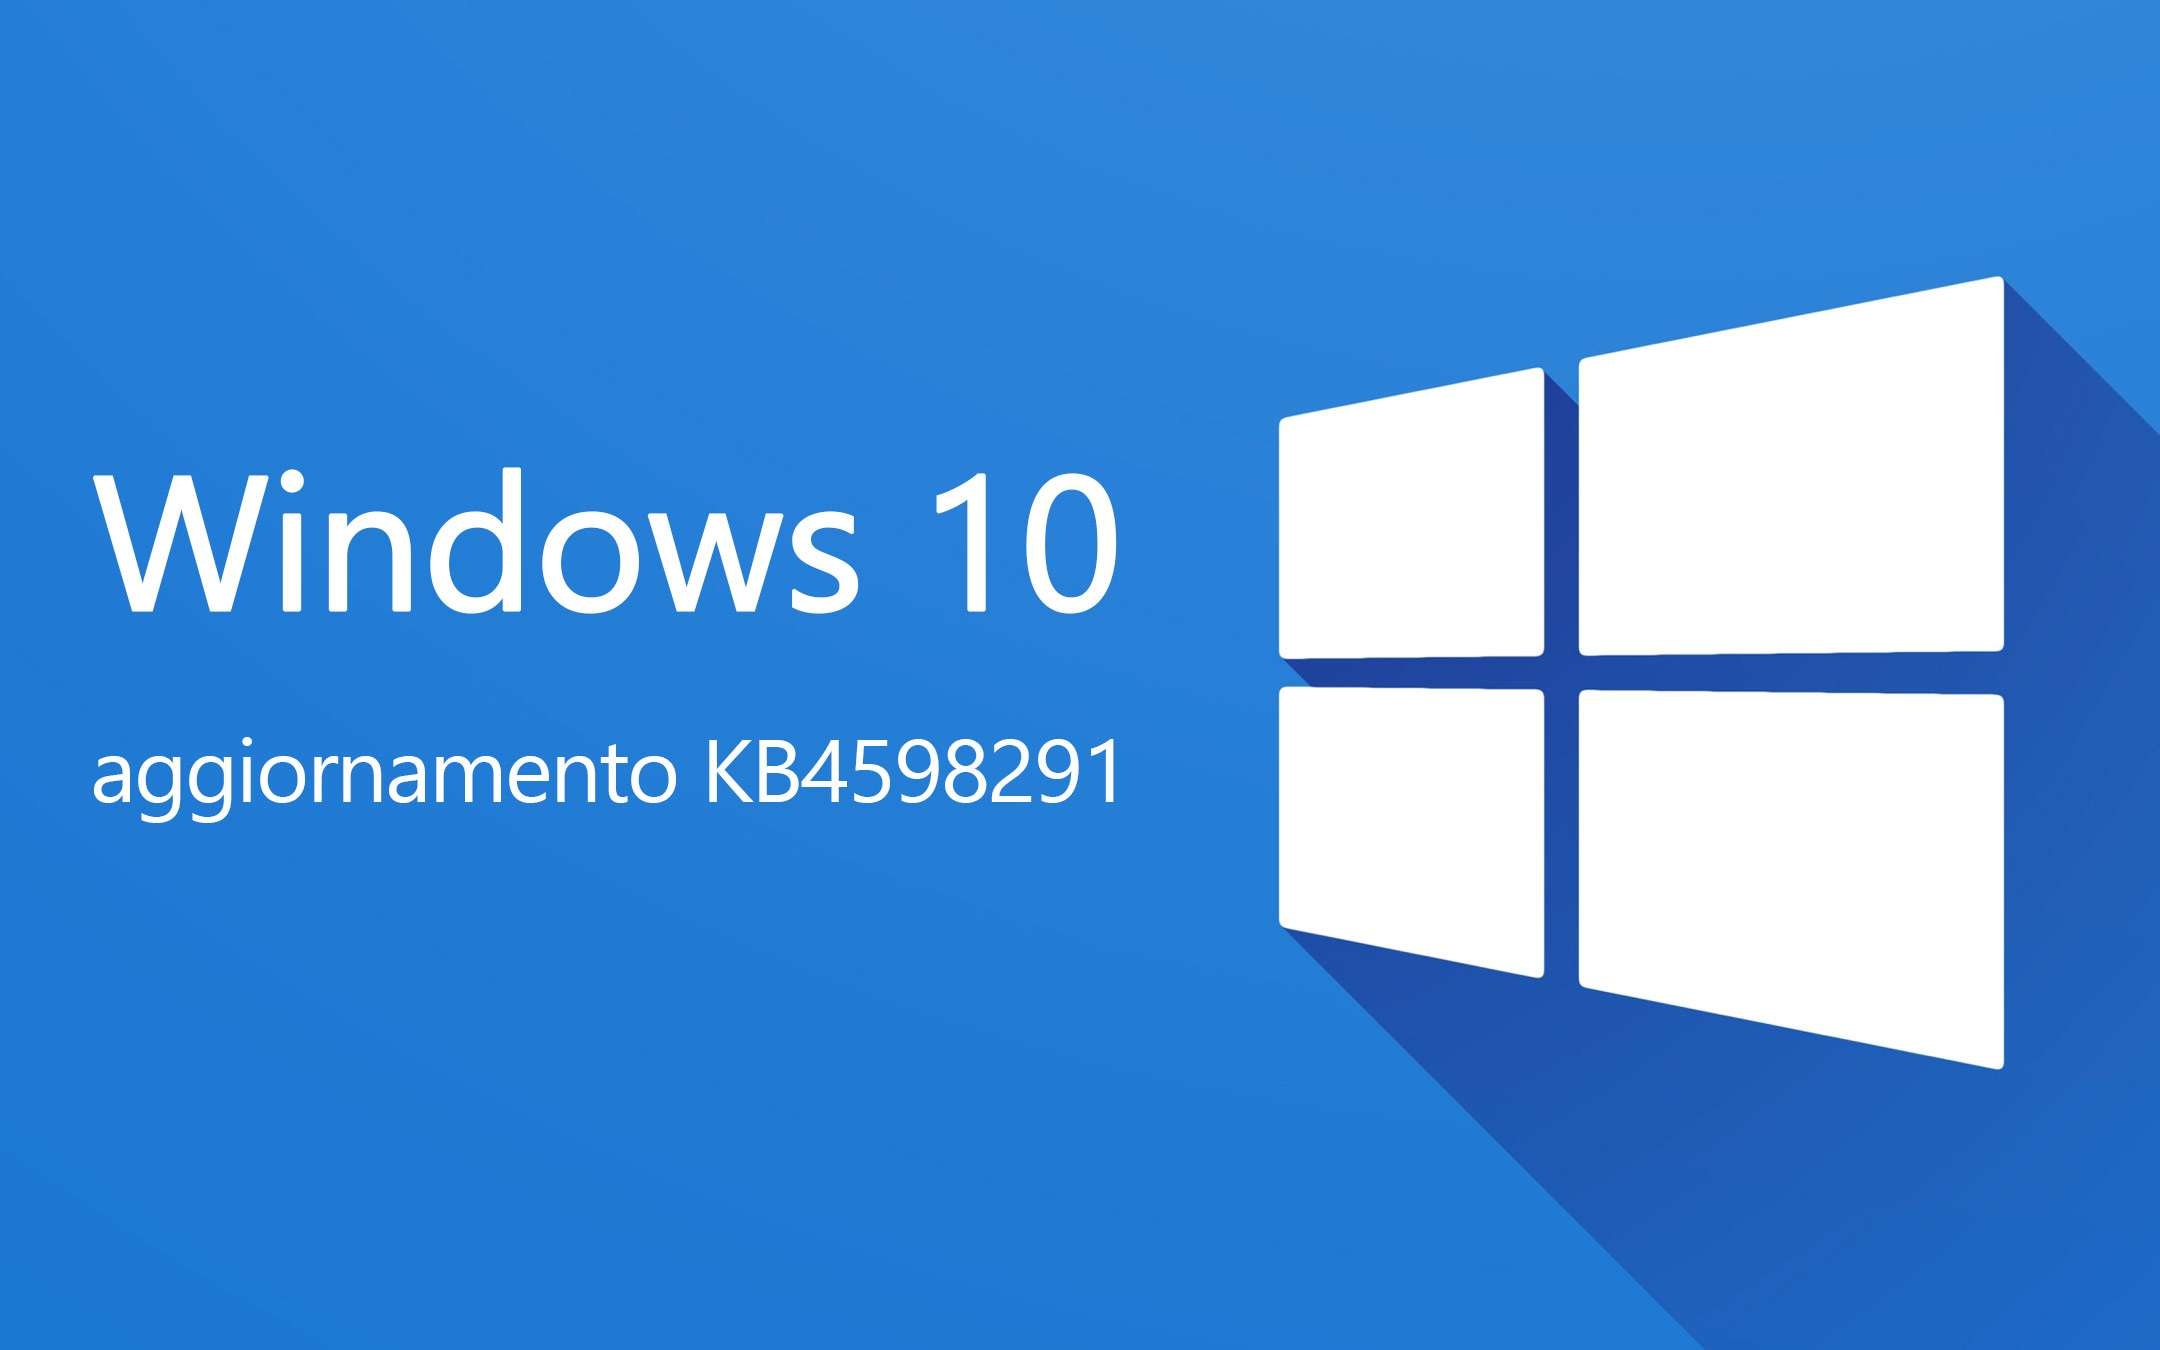 Windows 10: bugfixes and bugs in the latest update